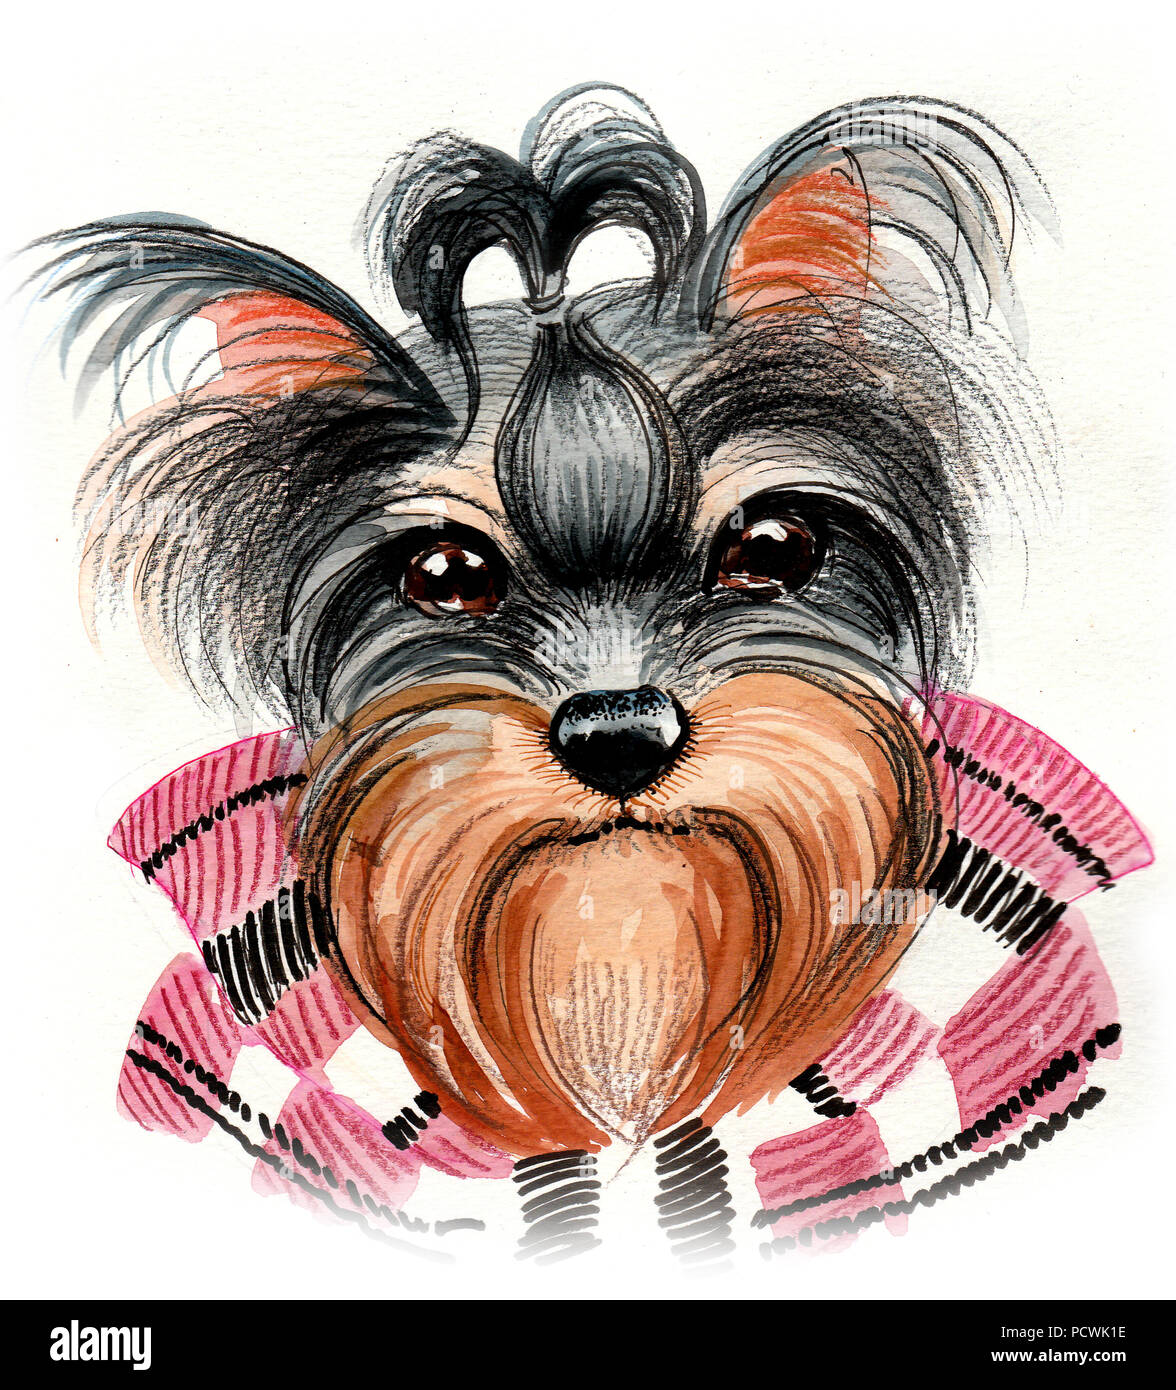 Yorkshire Terrier Dog Watercolor Illustration Stock Photo